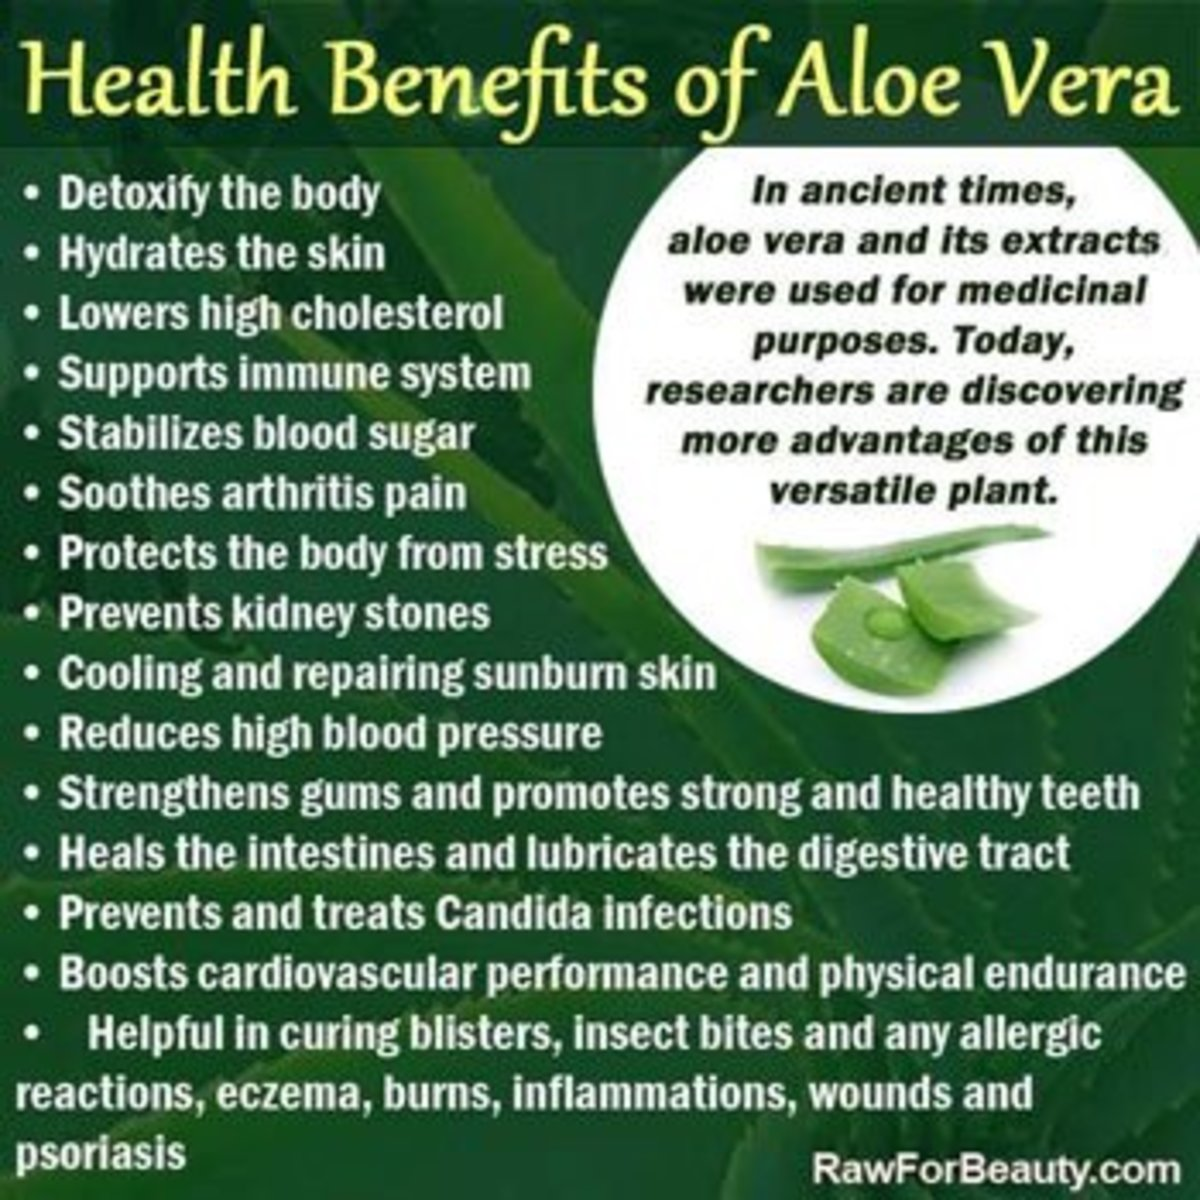 Some of the top benefits of Aloe Vera.